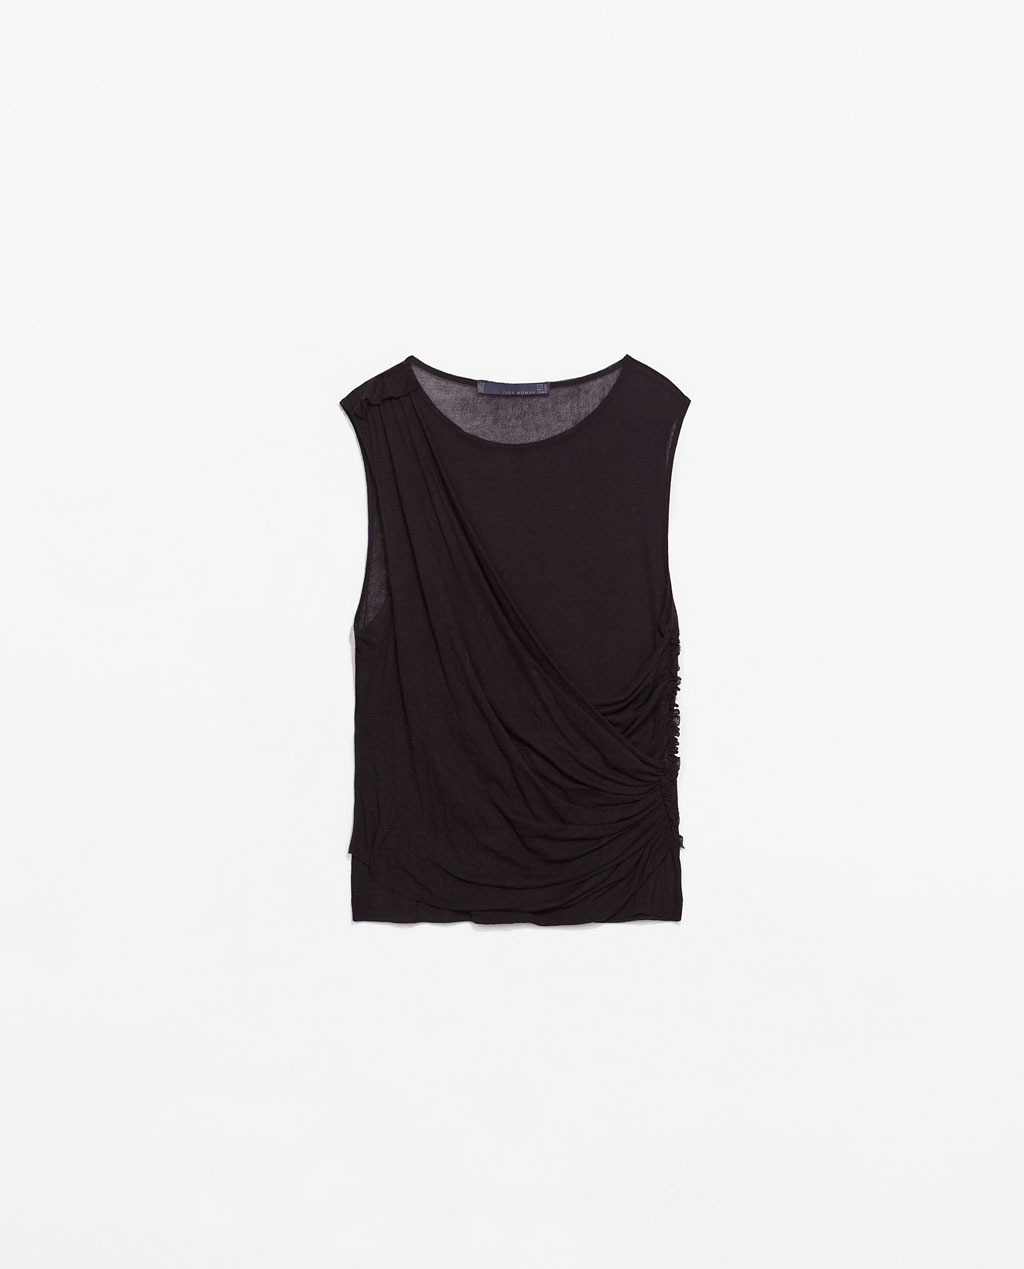 Draped Studio T Shirt - neckline: round neck; pattern: plain; sleeve style: sleeveless; waist detail: flattering waist detail; predominant colour: black; occasions: casual, evening, creative work; length: standard; style: top; fibres: cotton - 100%; fit: body skimming; sleeve length: sleeveless; pattern type: fabric; texture group: jersey - stretchy/drapey; season: s/s 2014